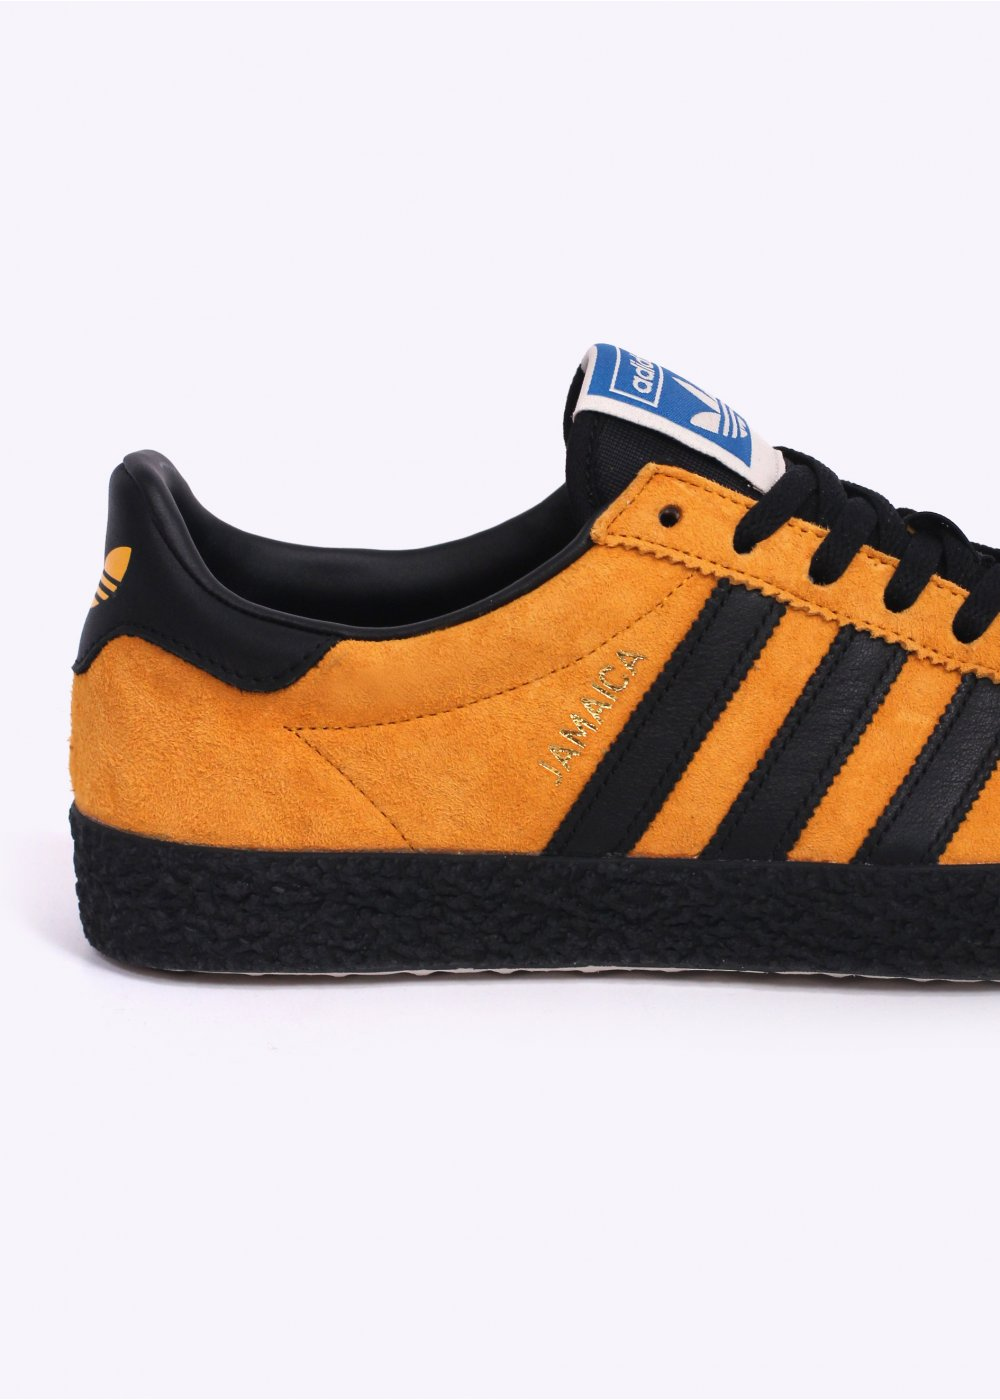 adidas jamaica shoes | Great Quality. Fast Delivery. Special